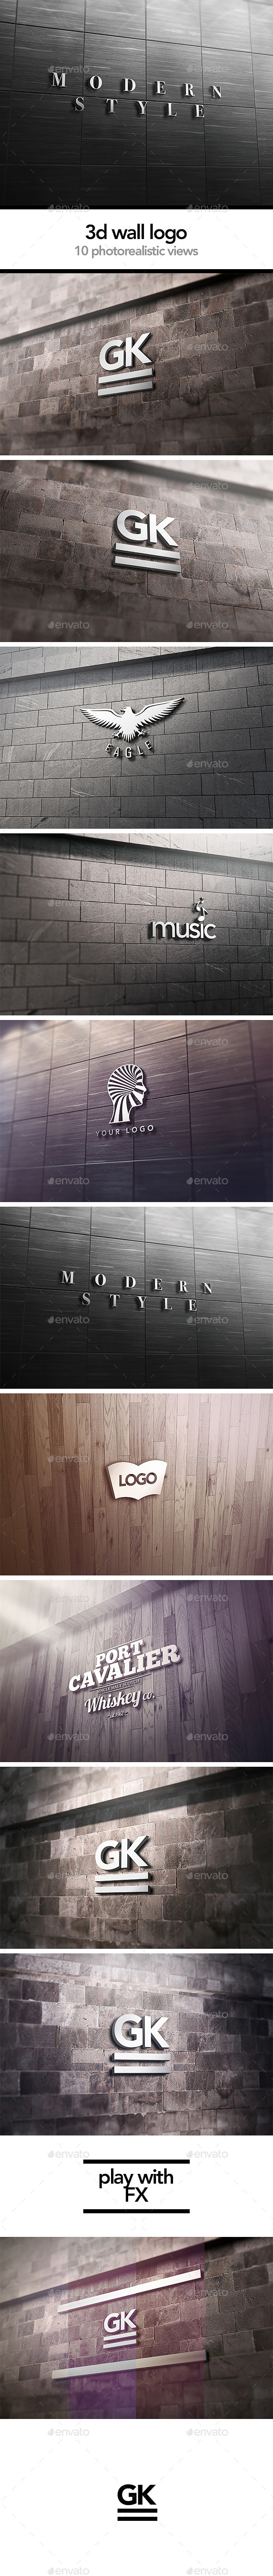 3D Logo Signage Wall Mock Up - Logo Product Mock-Ups